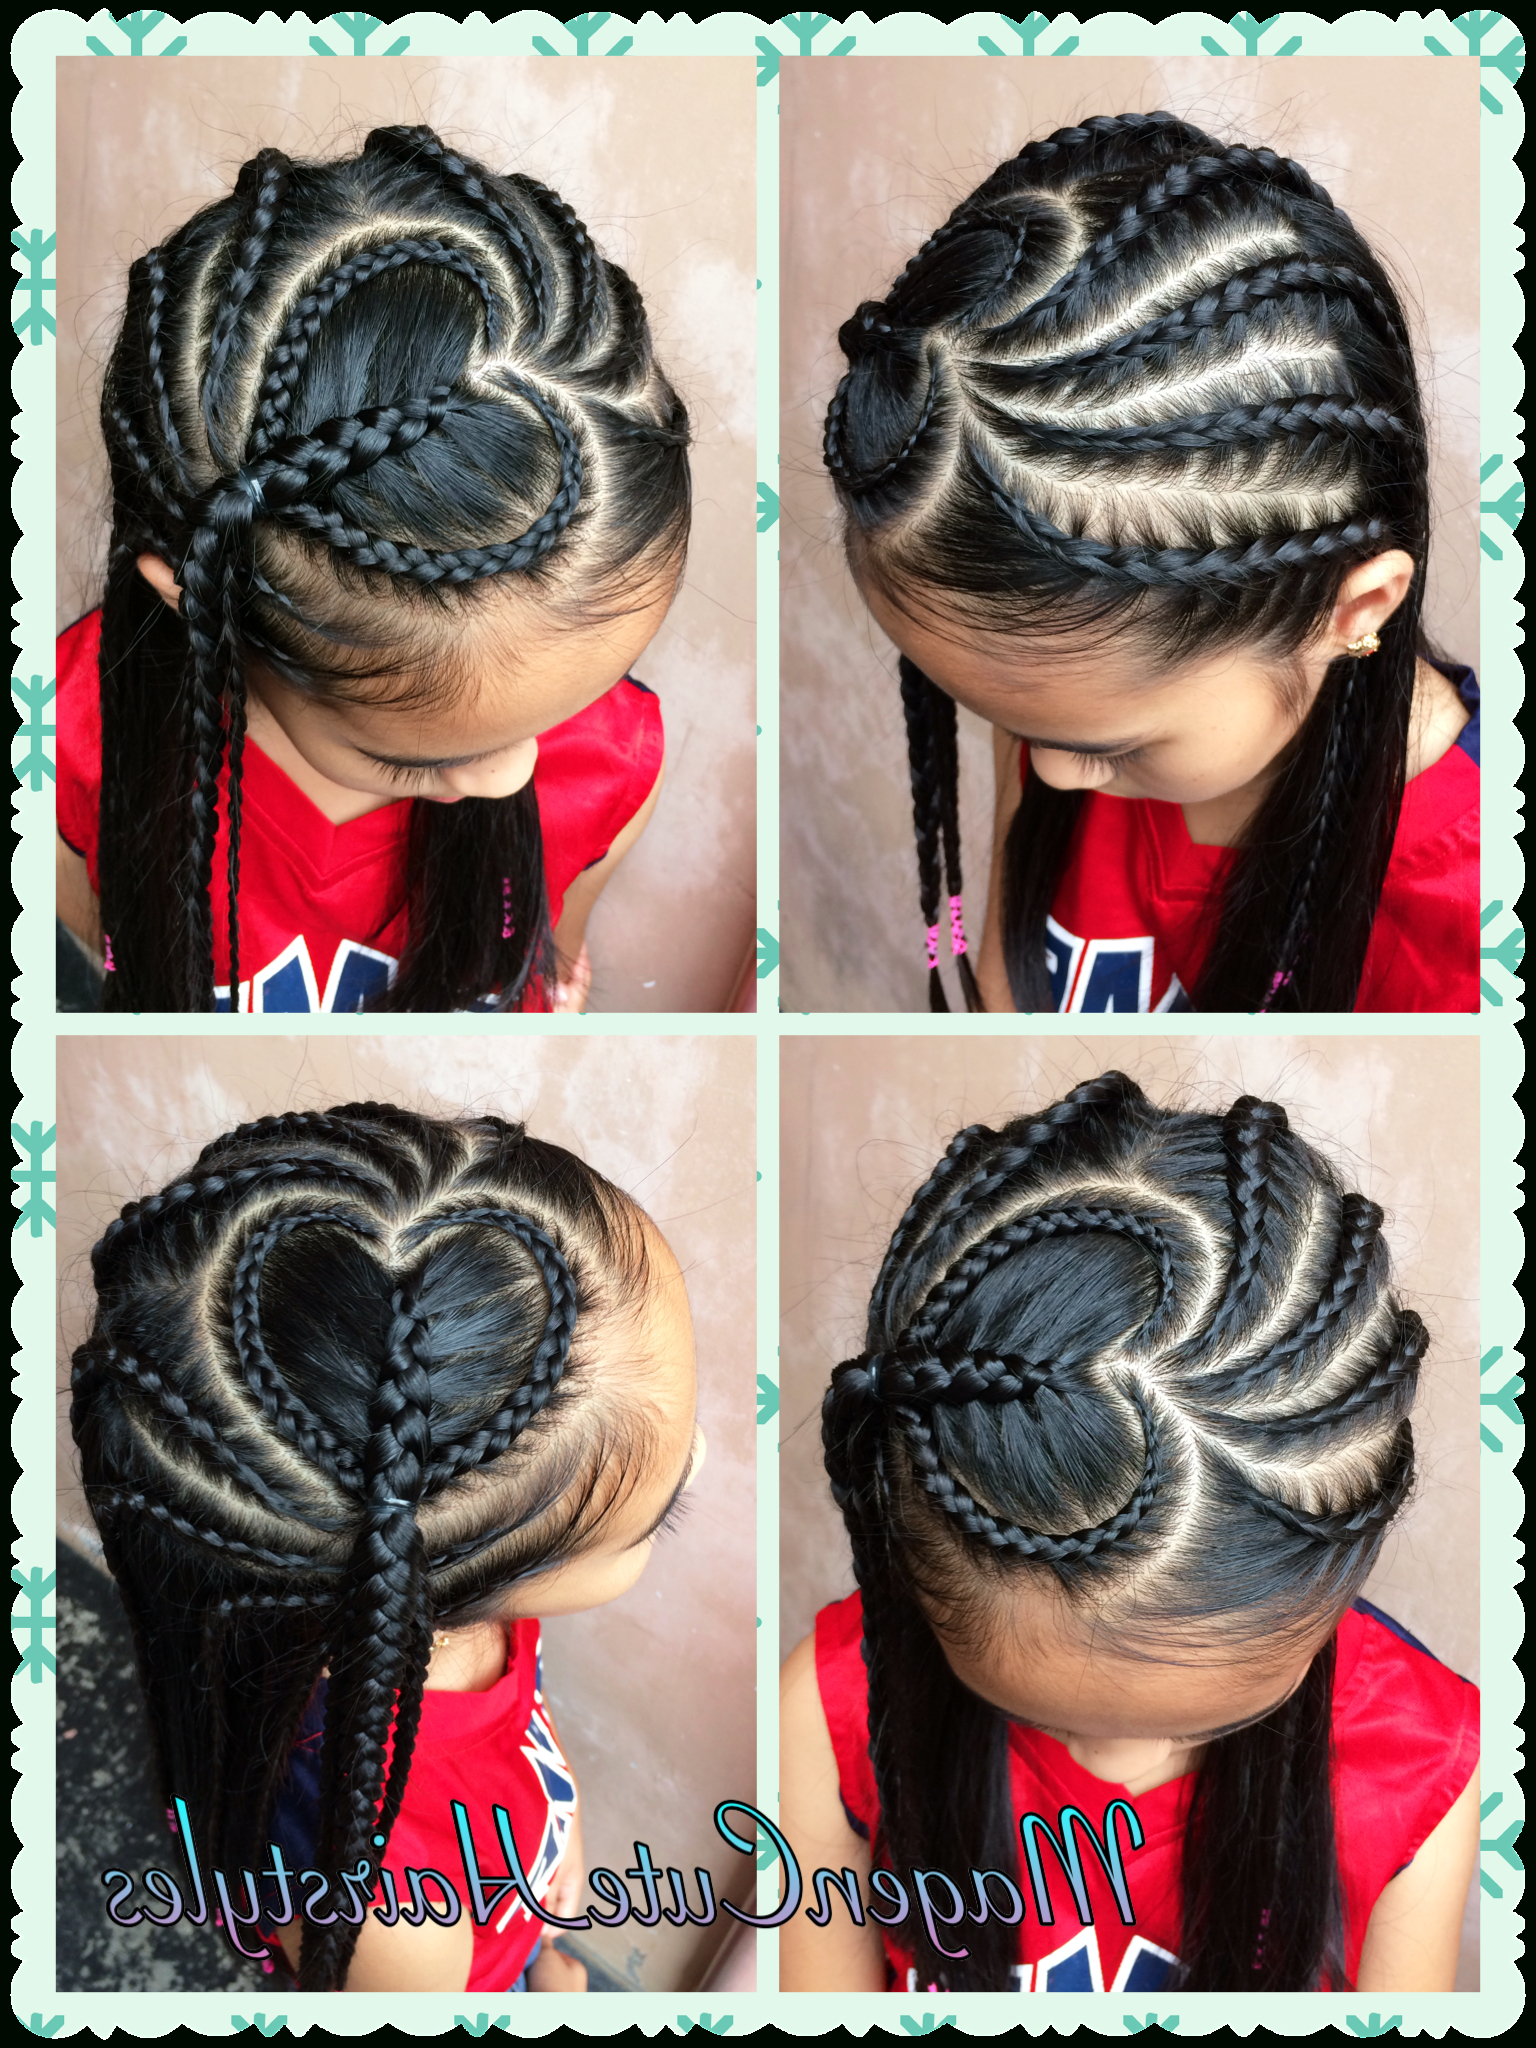 Latest Heart Shaped Fishtail Under Braid Hairstyles In Heart Shape Dutch Braid Style❤️❤️❤️ (Gallery 2 of 20)